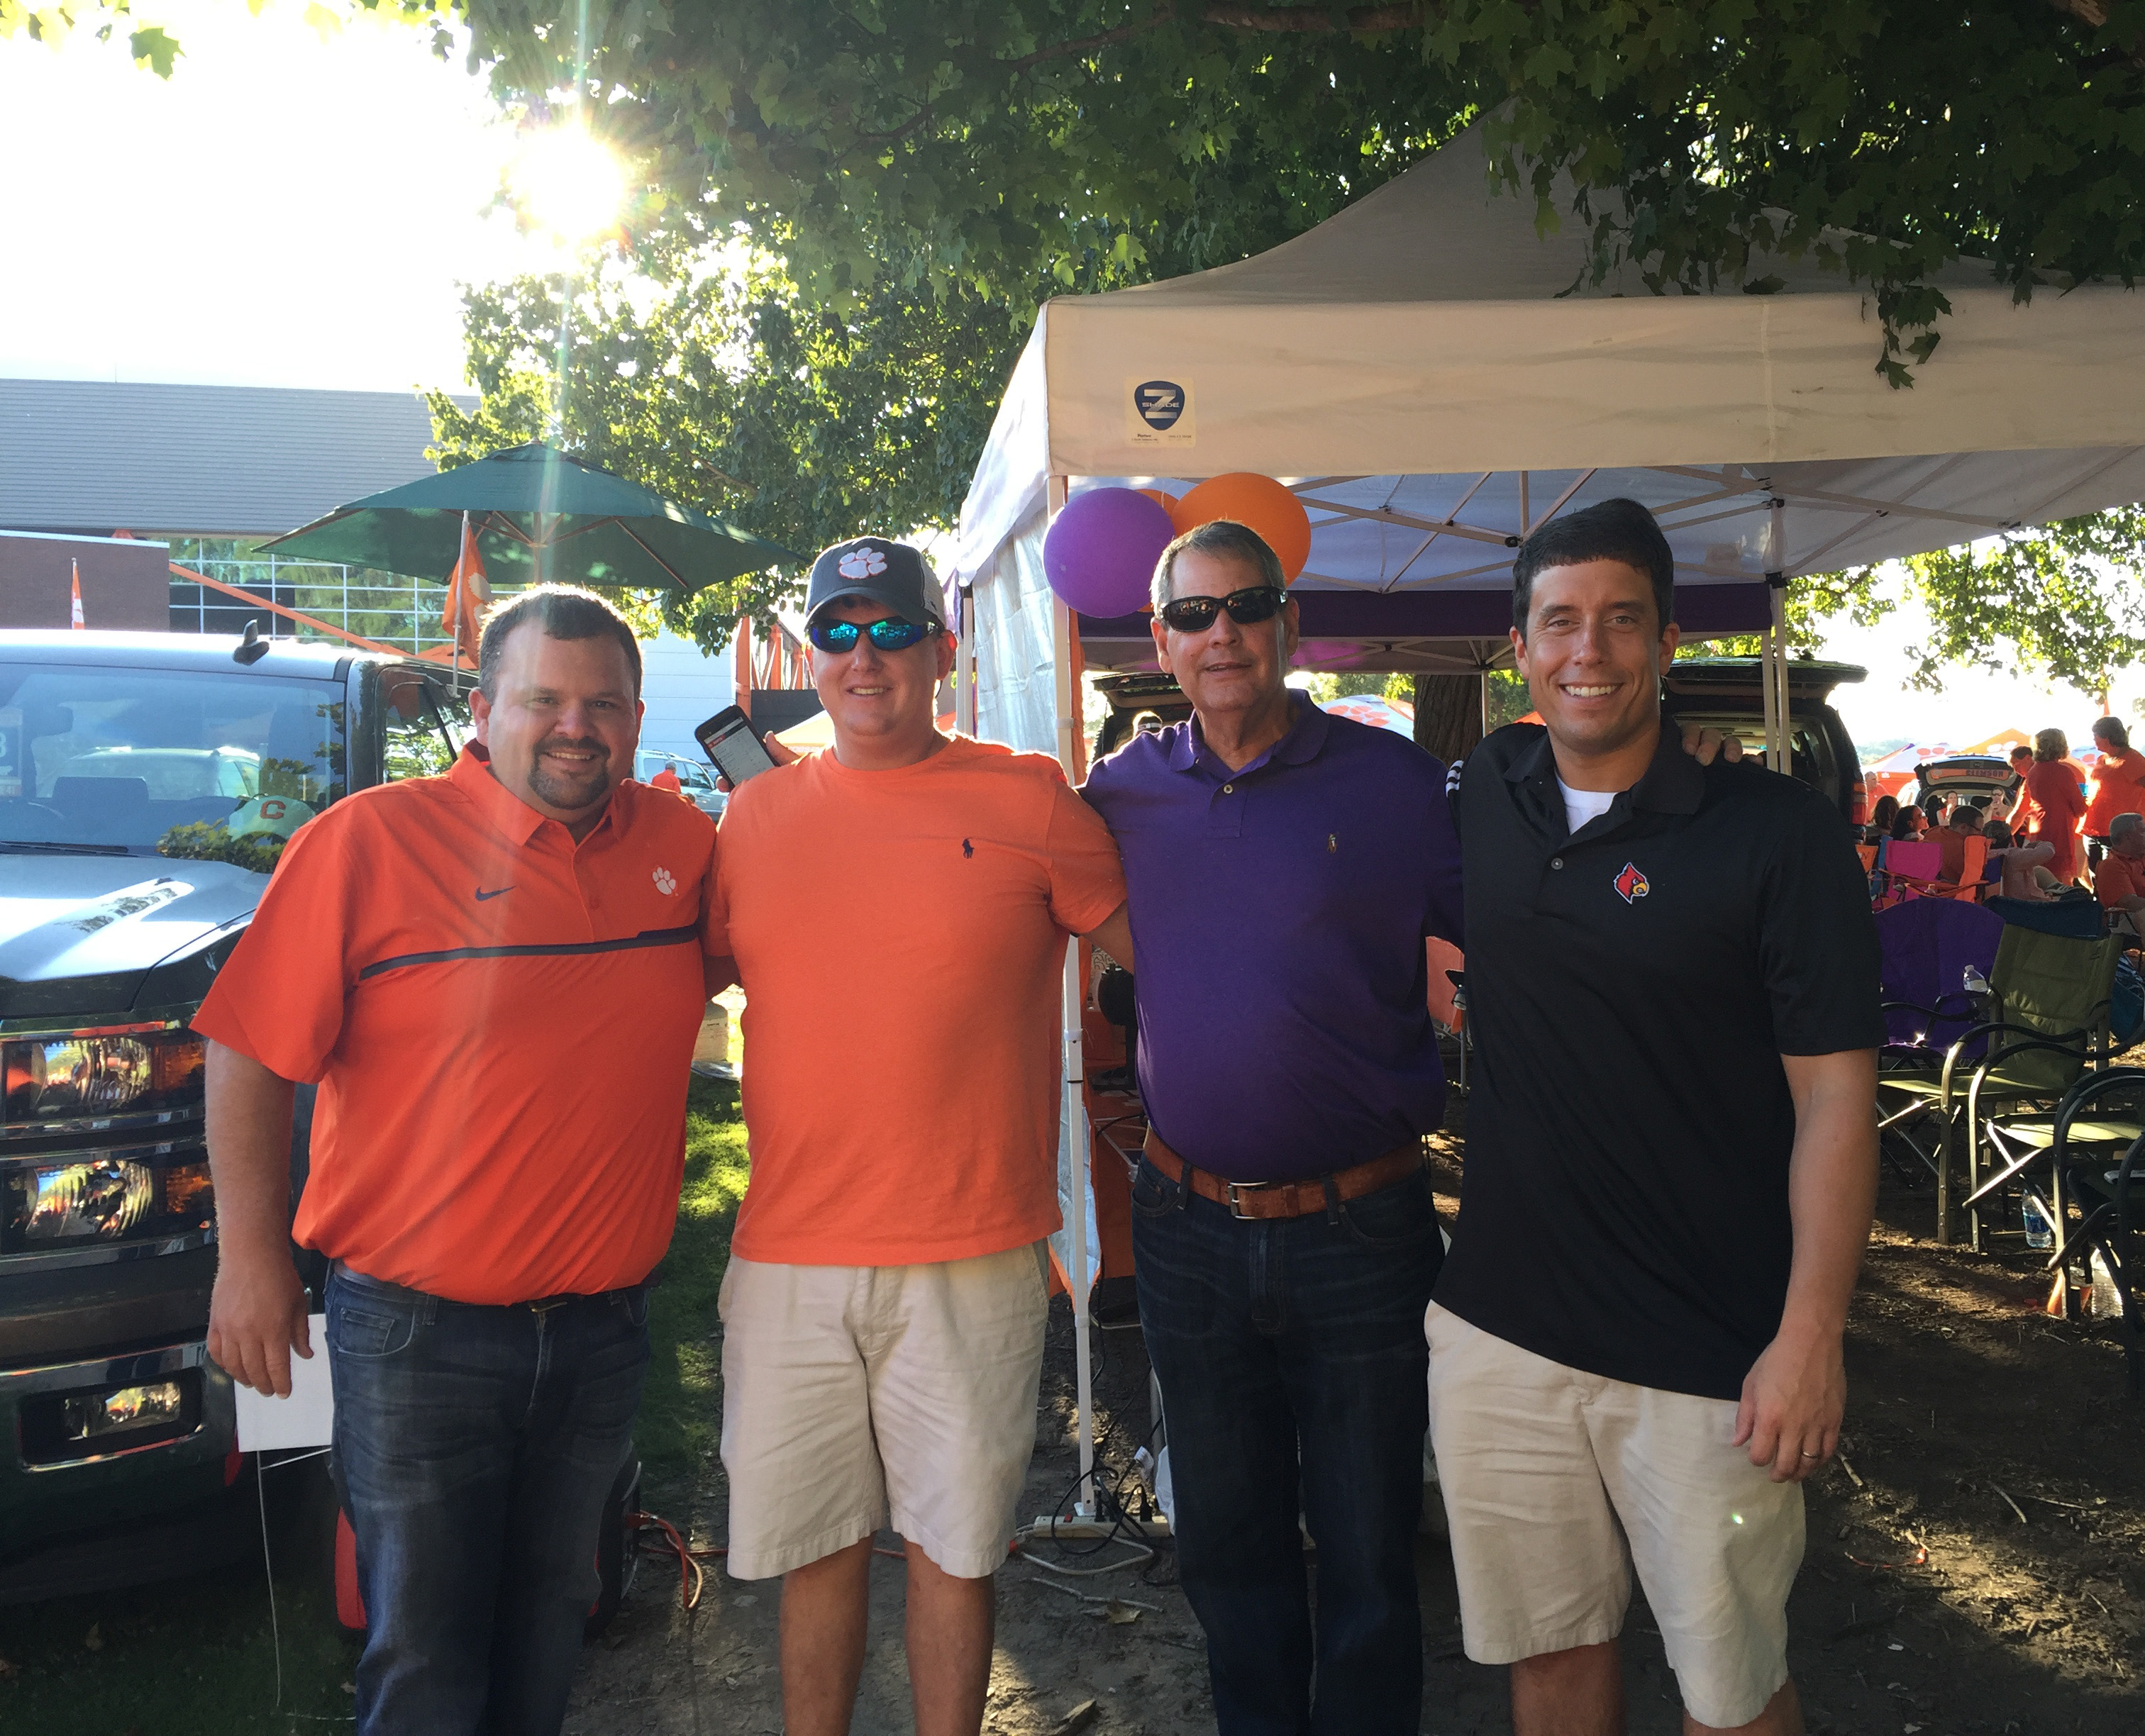 A photo of us guys (L-R: Jon, John Henry, Mr. Sid, Out of Place Guy Wearing Louisville polo).